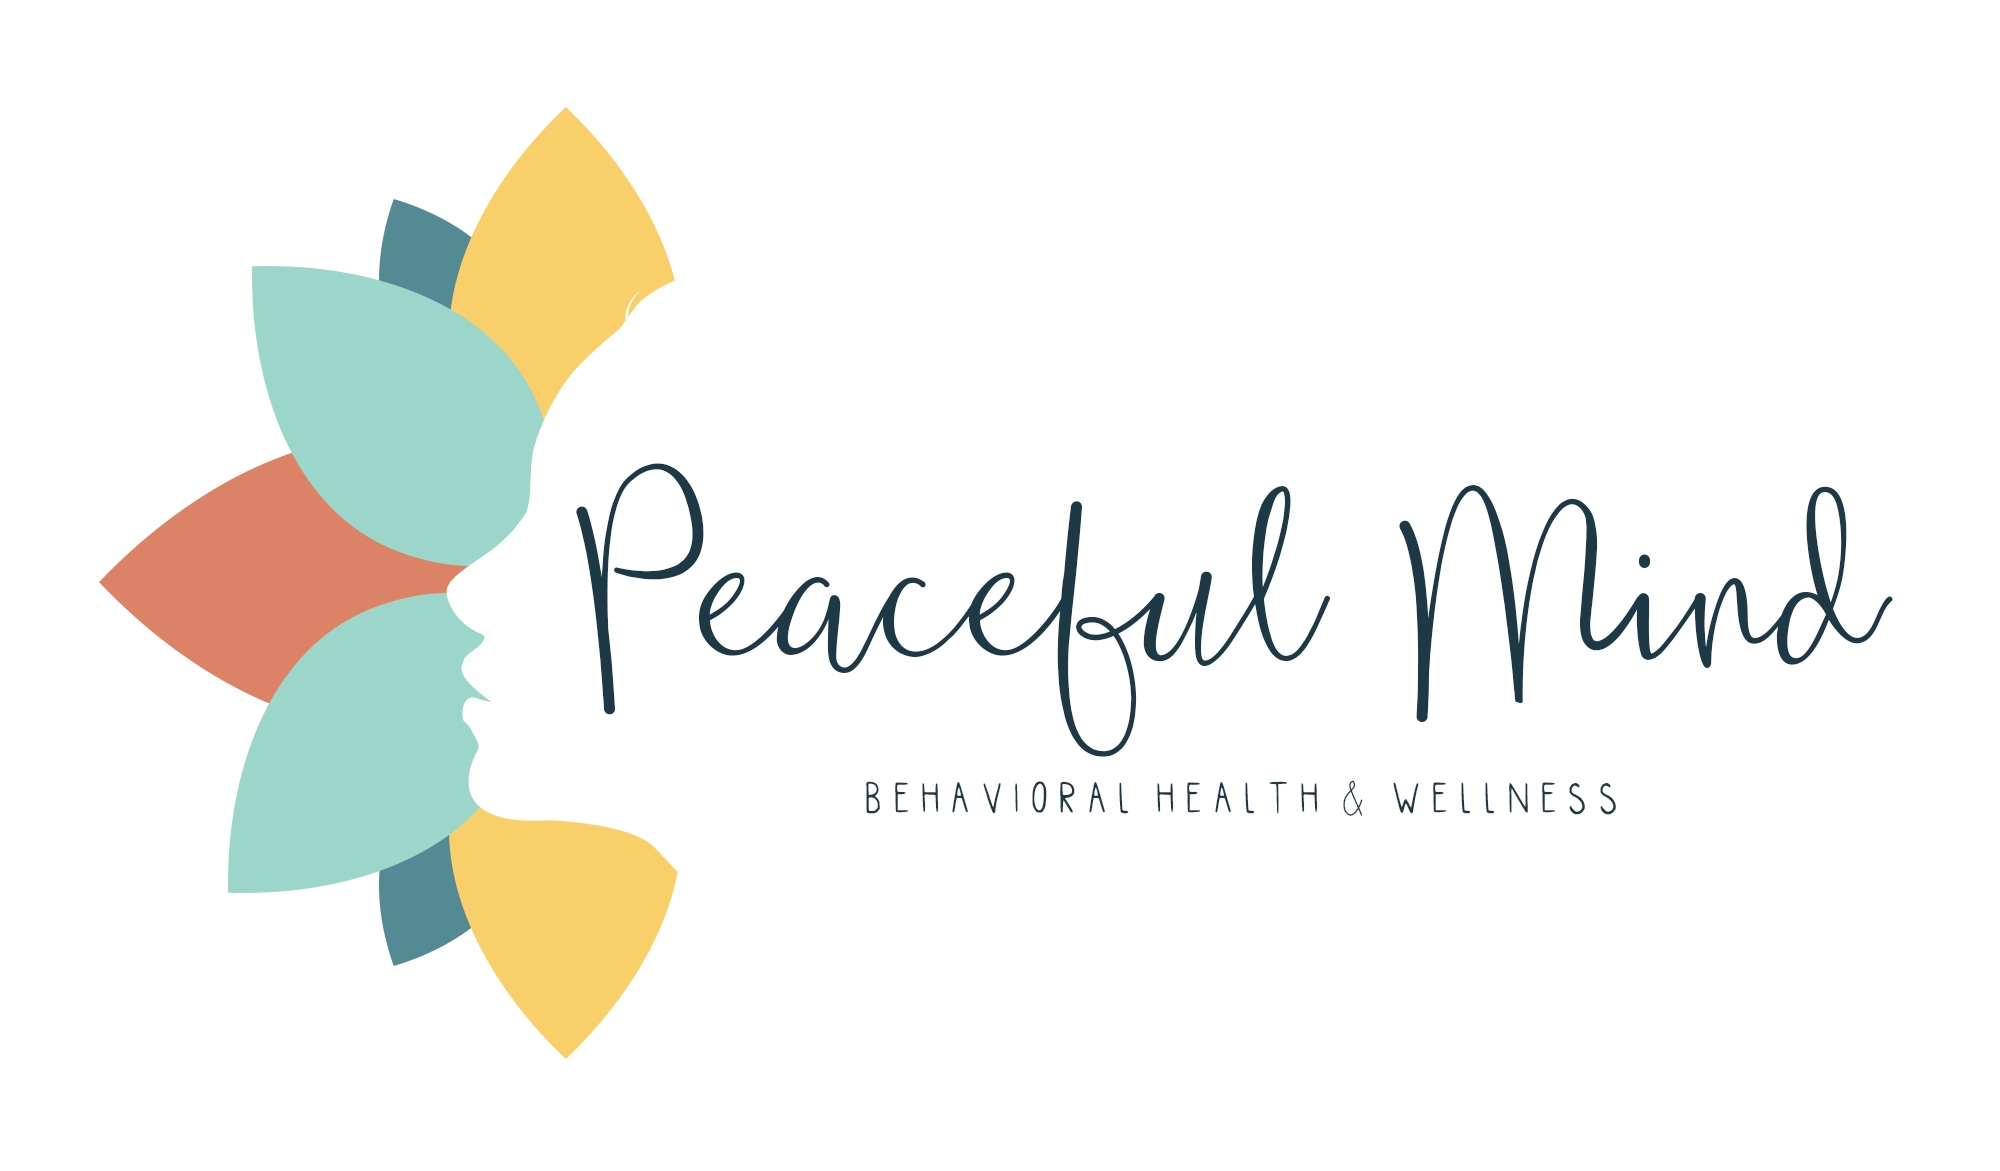 Peaceful Mind graphic